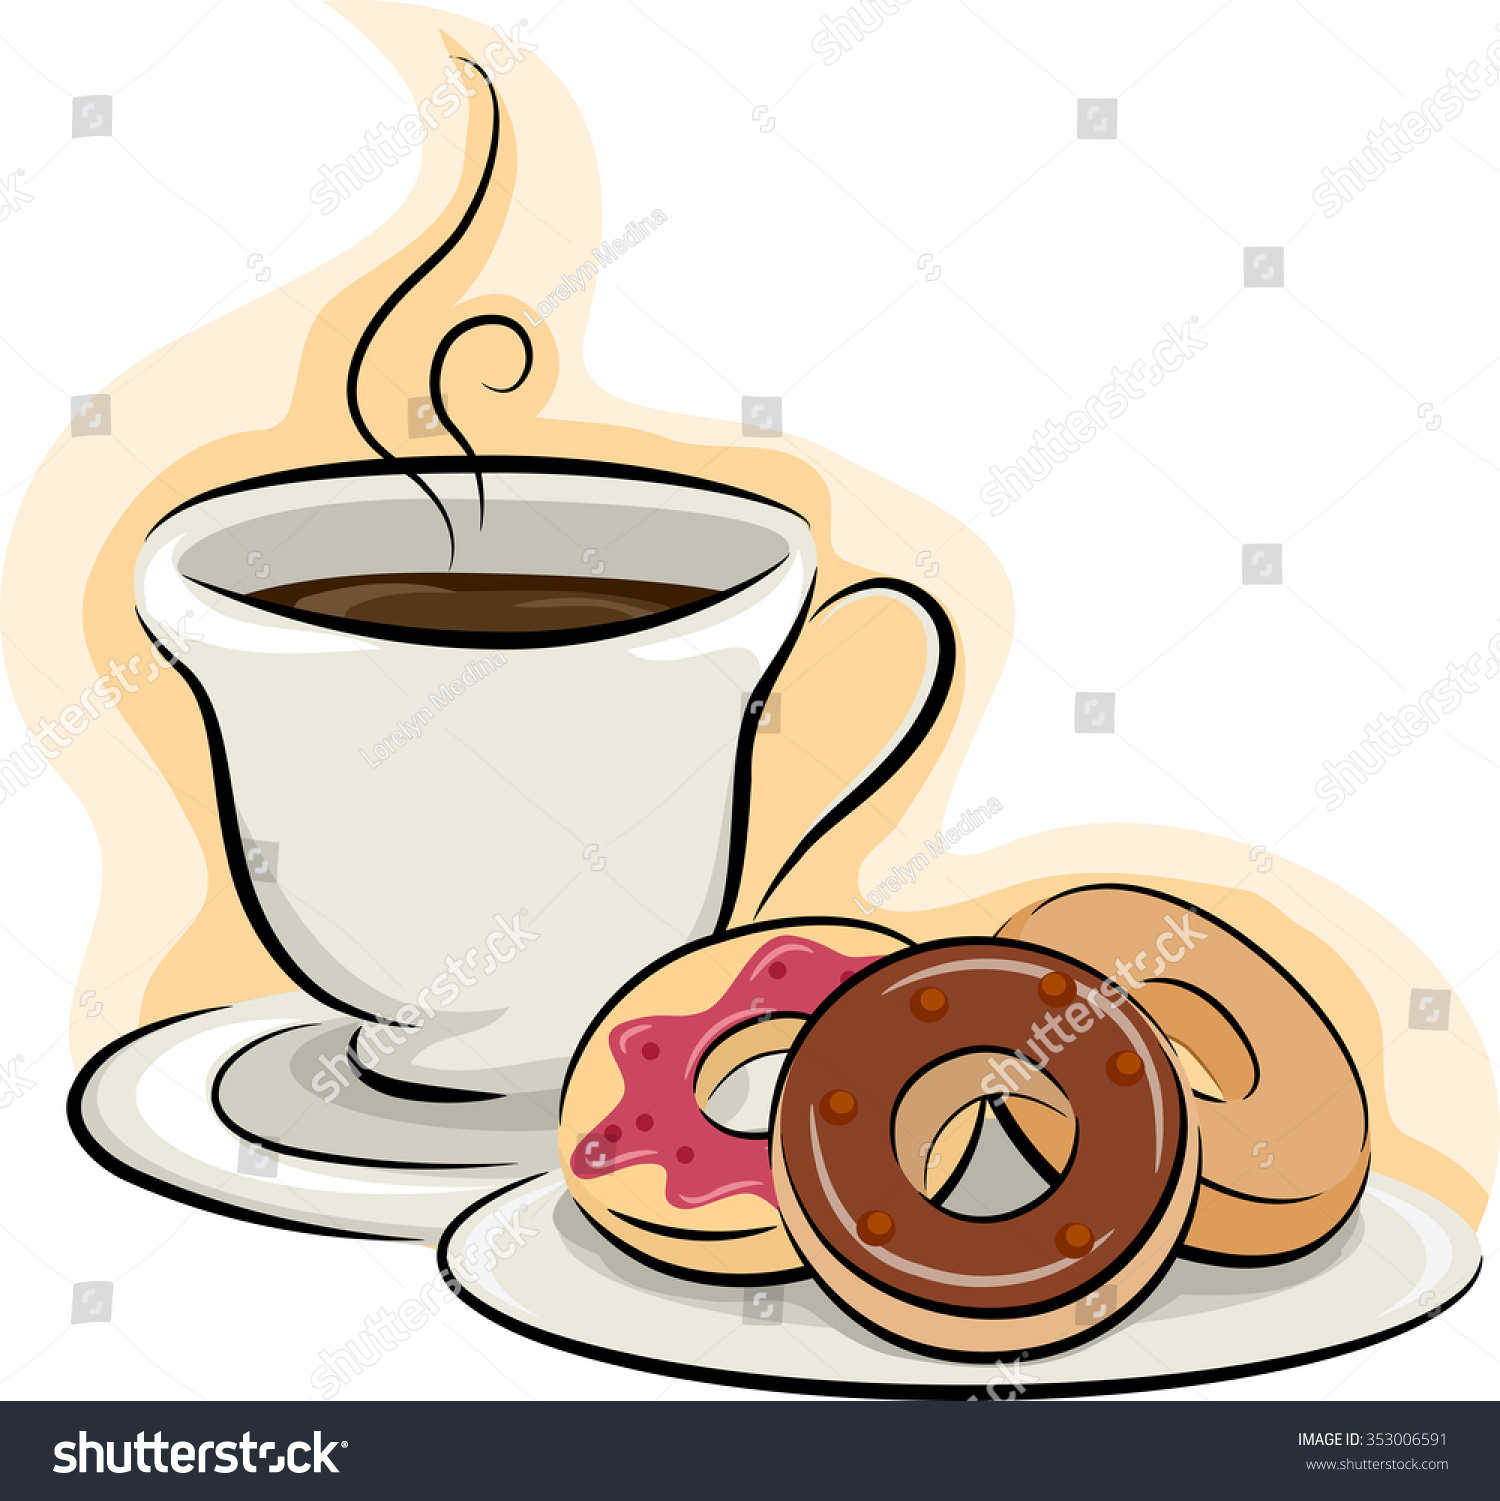 Cartoon Doughnut Factory: Illustration Cup Coffee Sitting Beside Plate Stock Vector